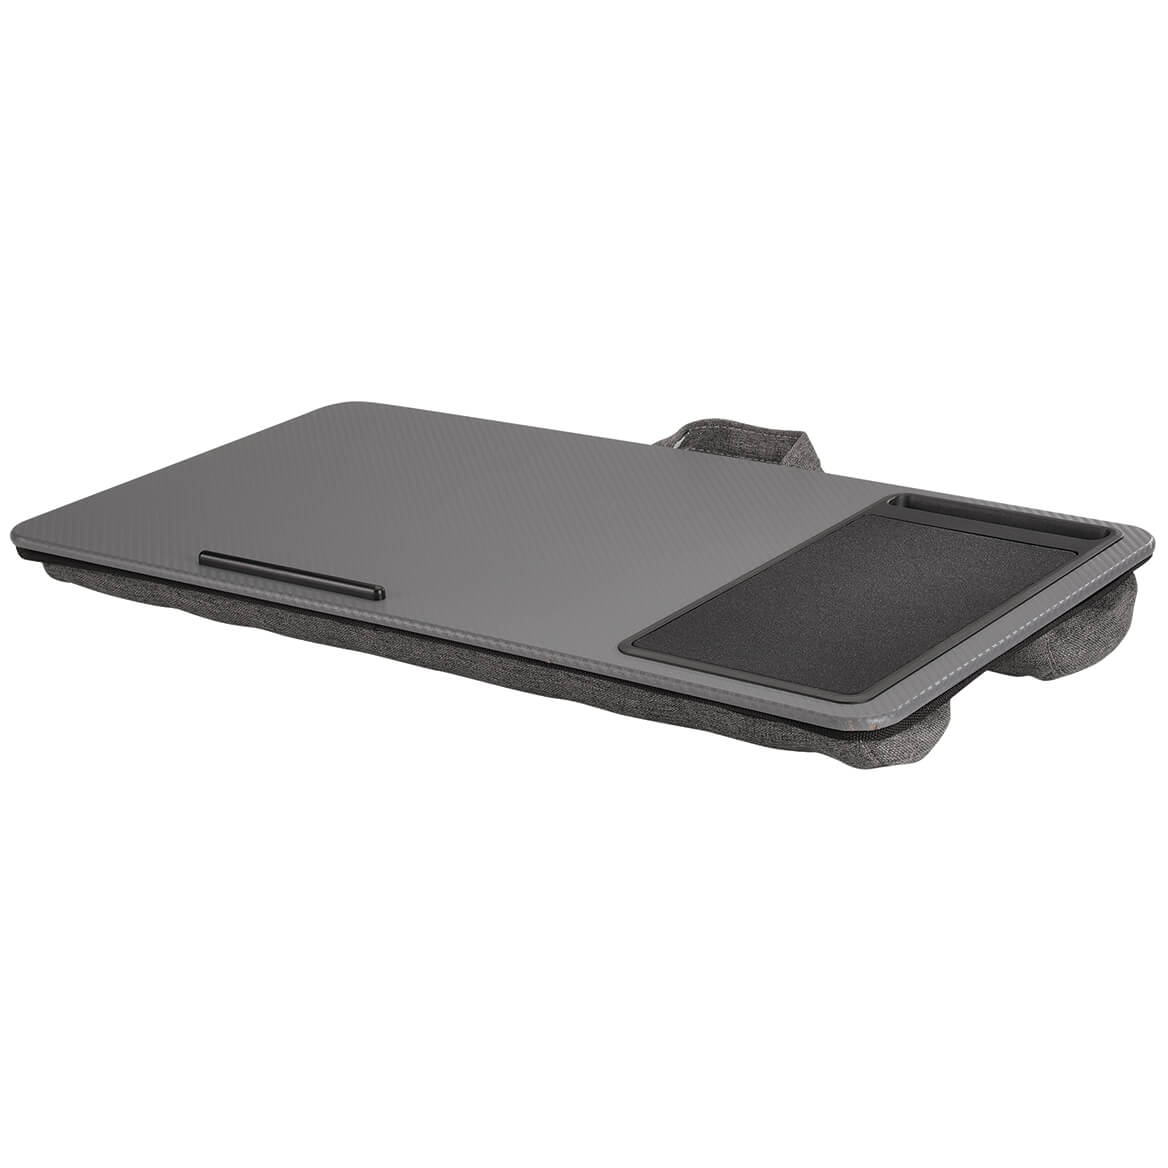 Cushioned Deluxe Laptop Lap Desk-370949